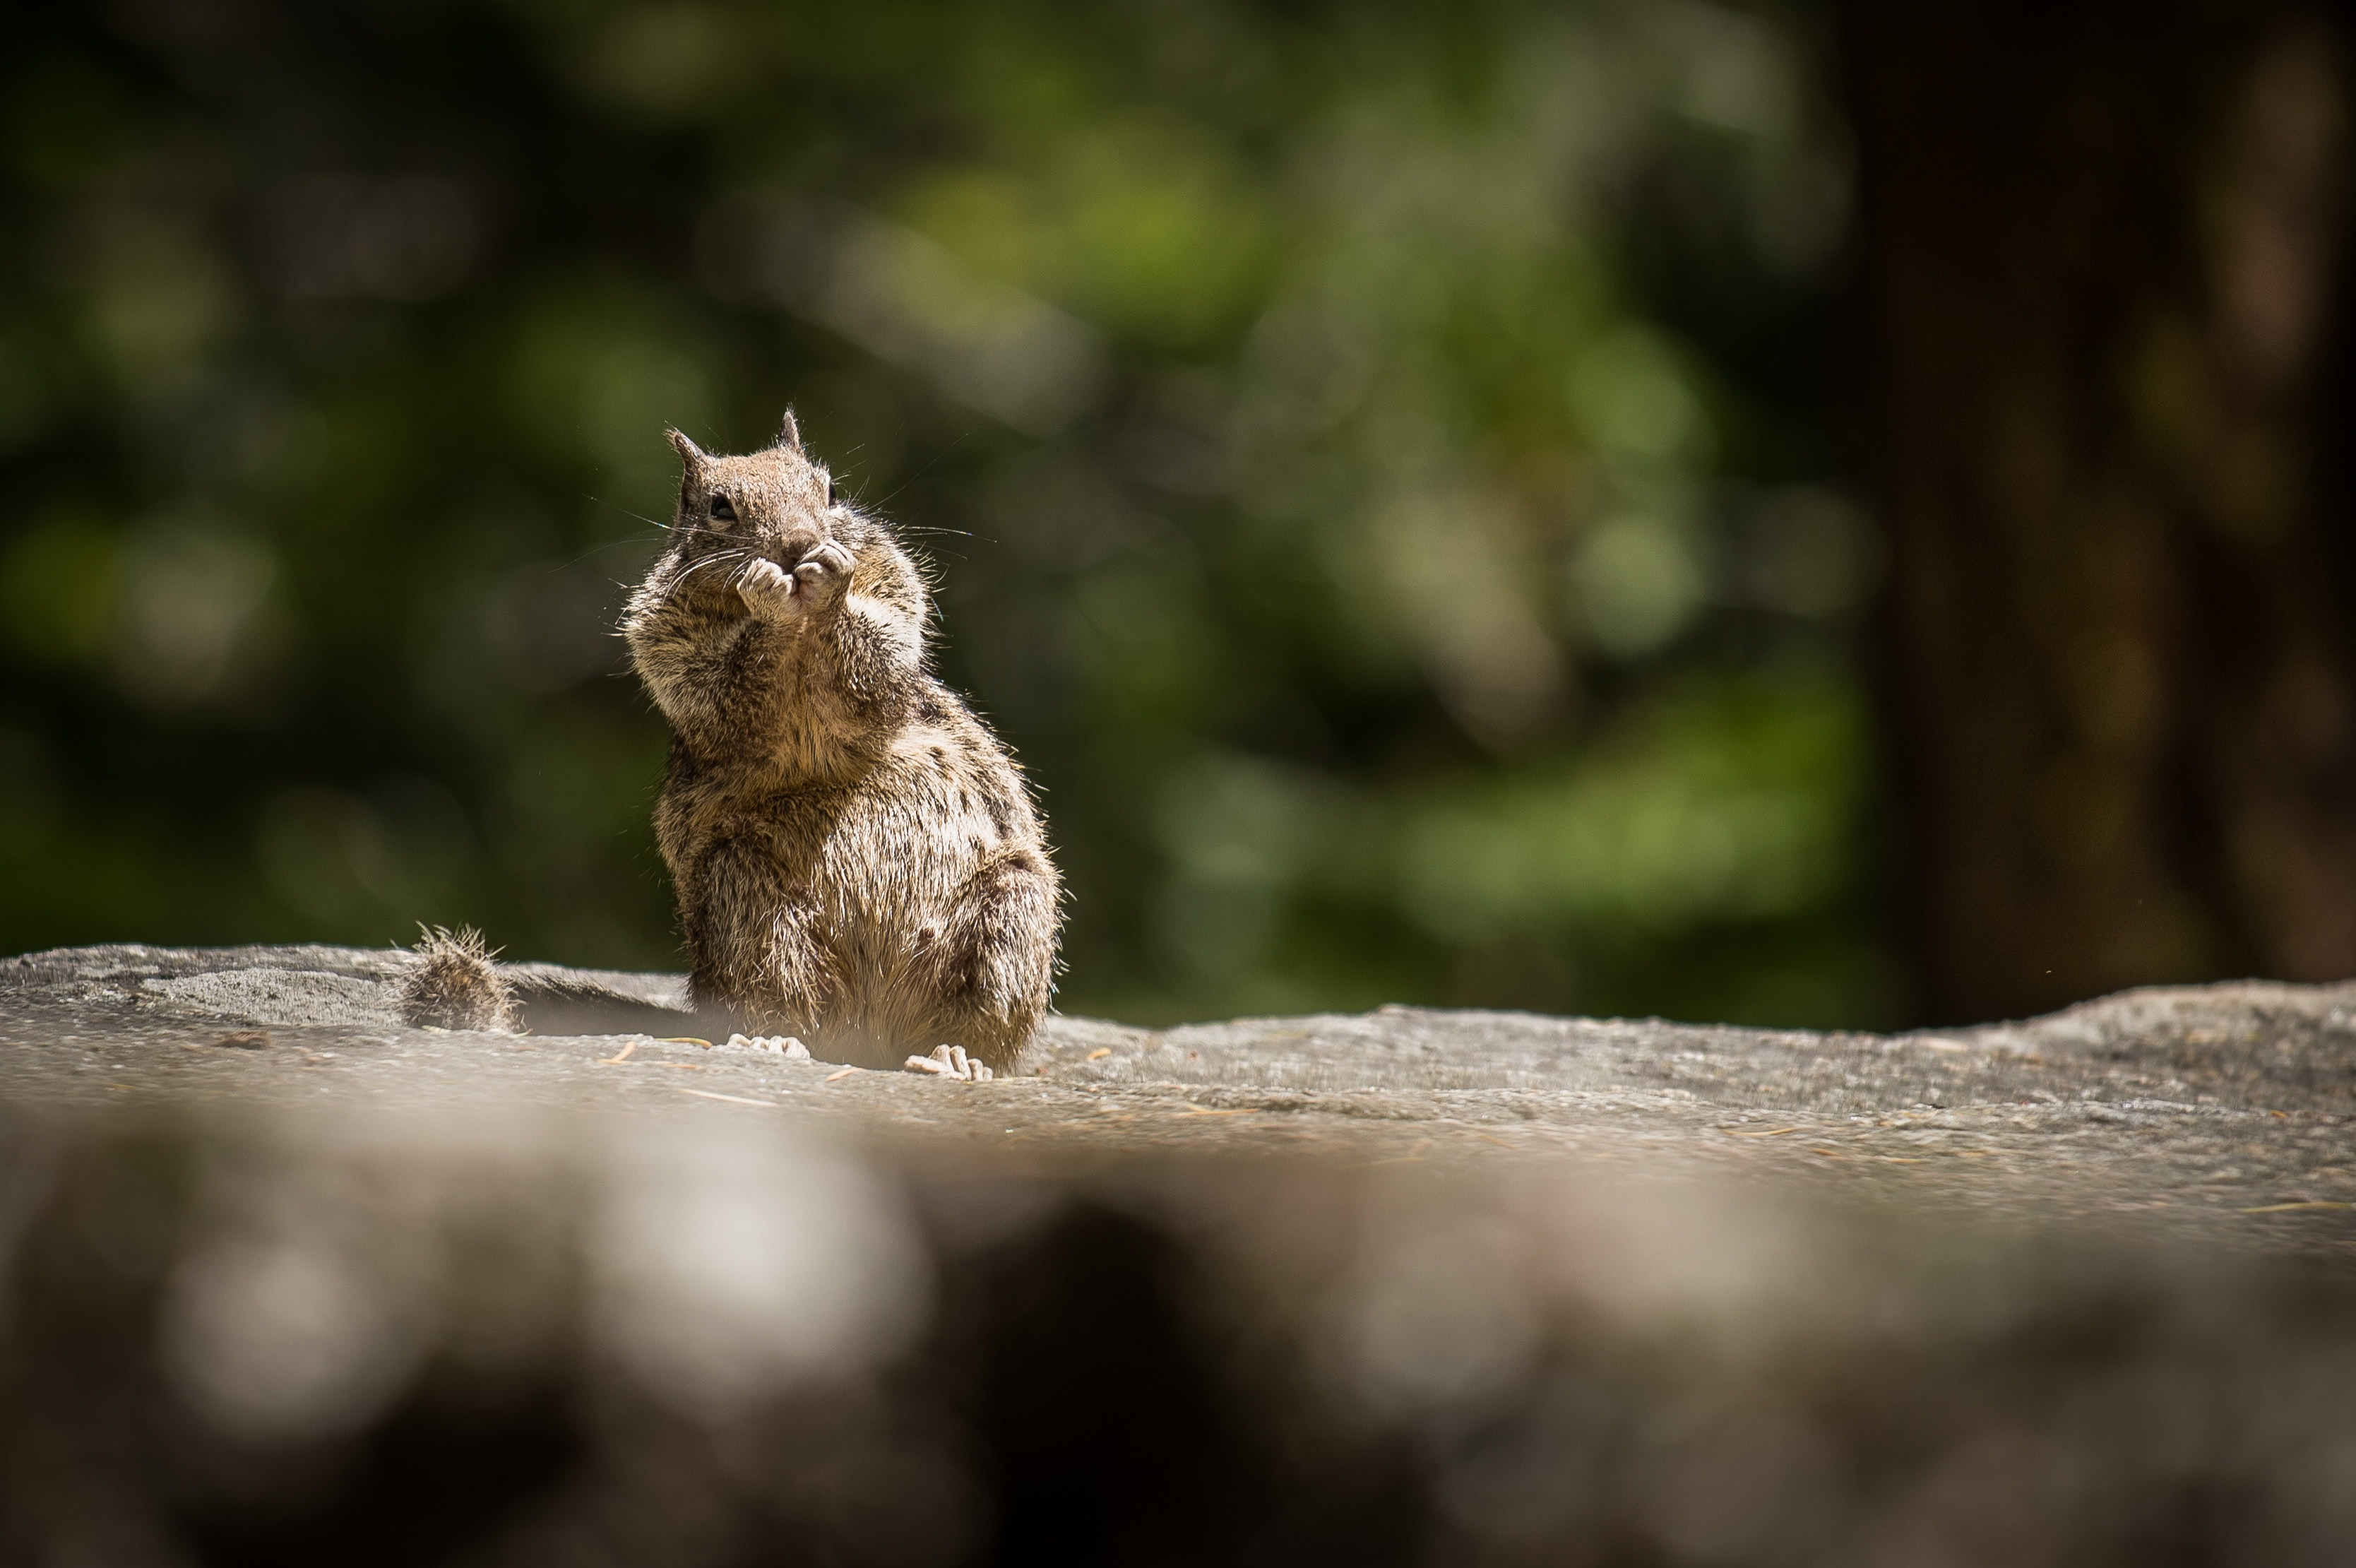 shallow focus photo of eating squirrel on rock